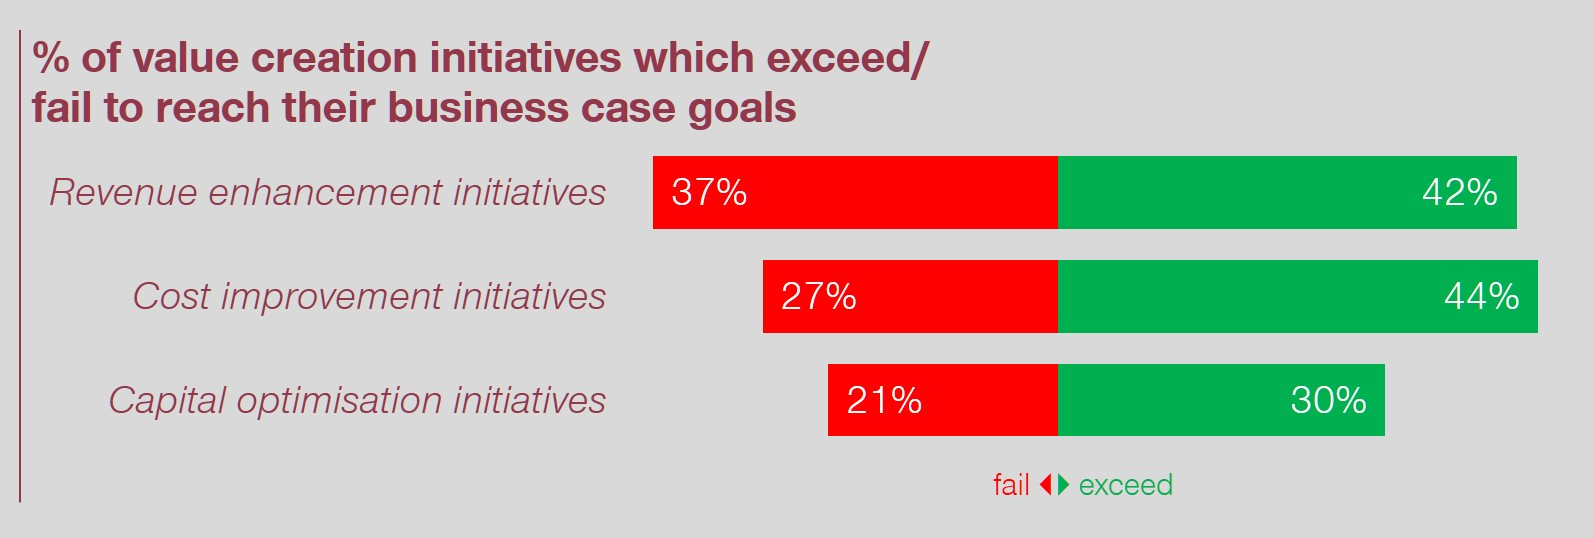 % of value creation initiatives which exceed/fail to reach their business case goals